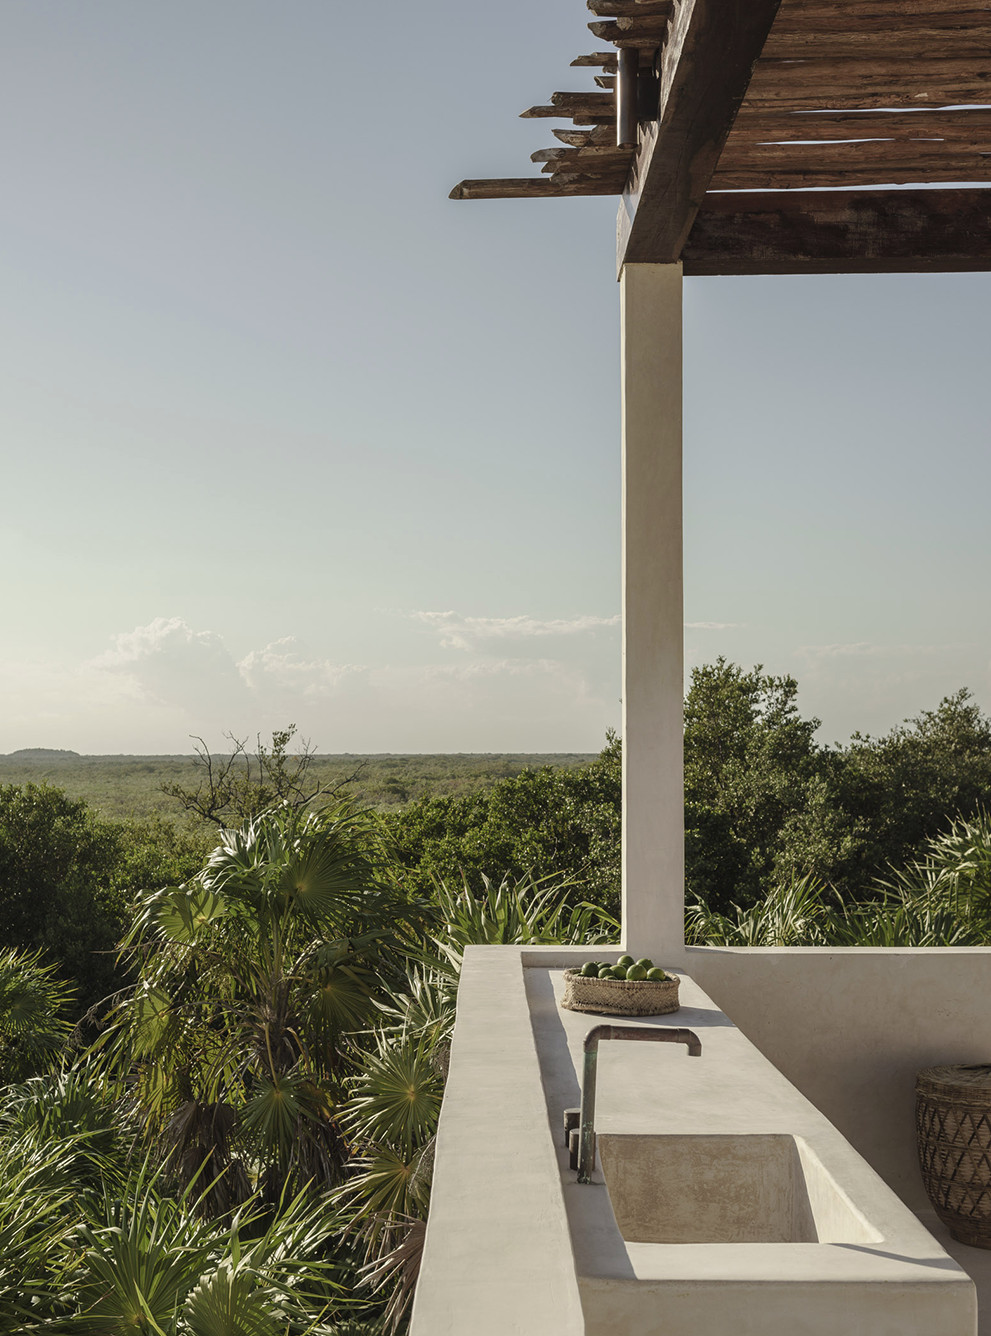 tulum-treehouse-house-013-01.jpg